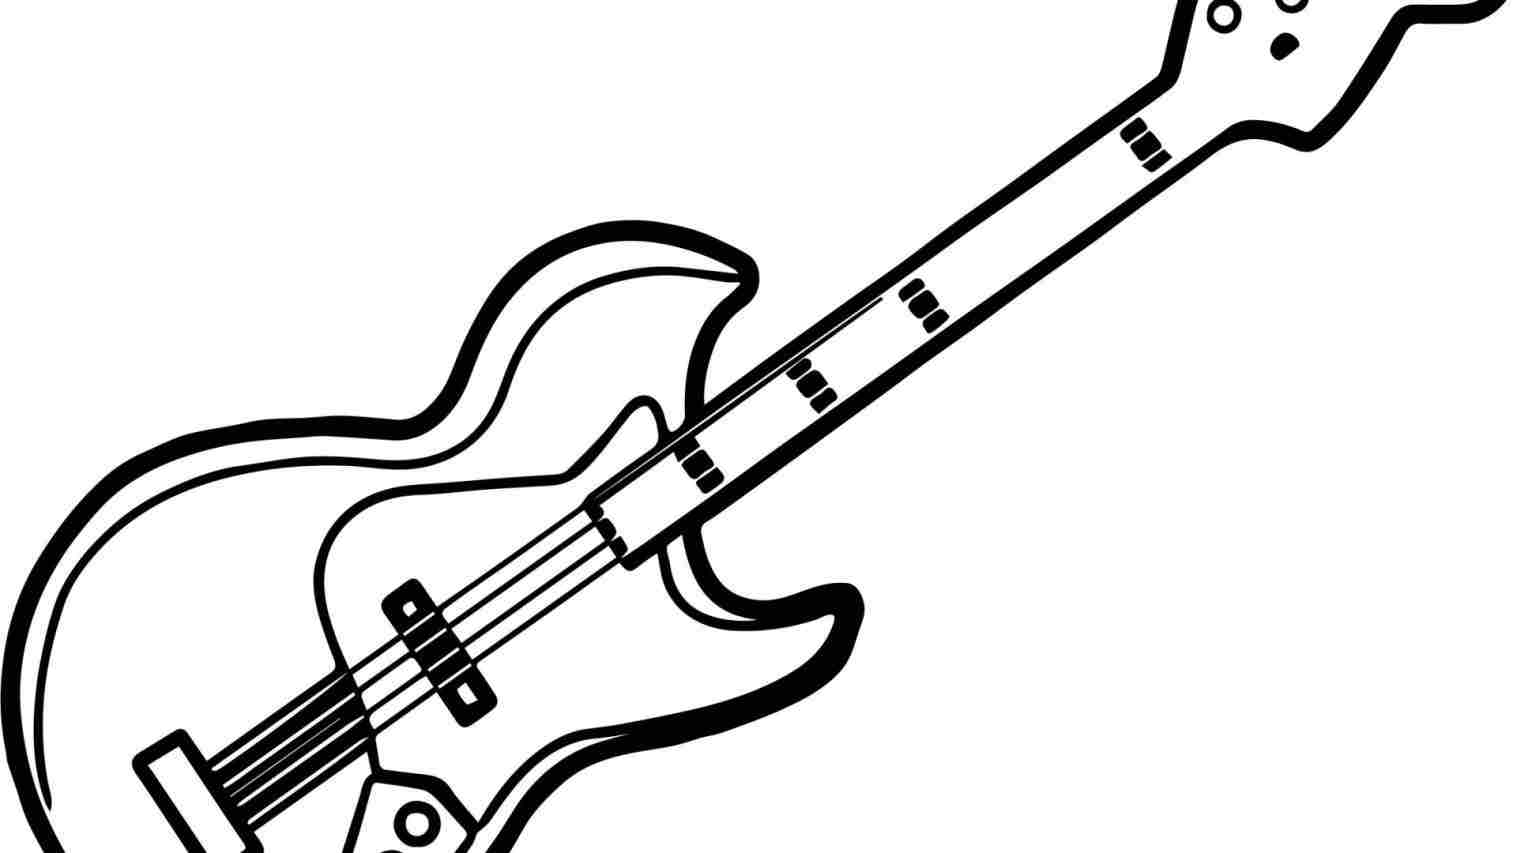 how to draw a electric guitar step by step learn how to draw guitar outline musical instruments a guitar how electric draw step to step by